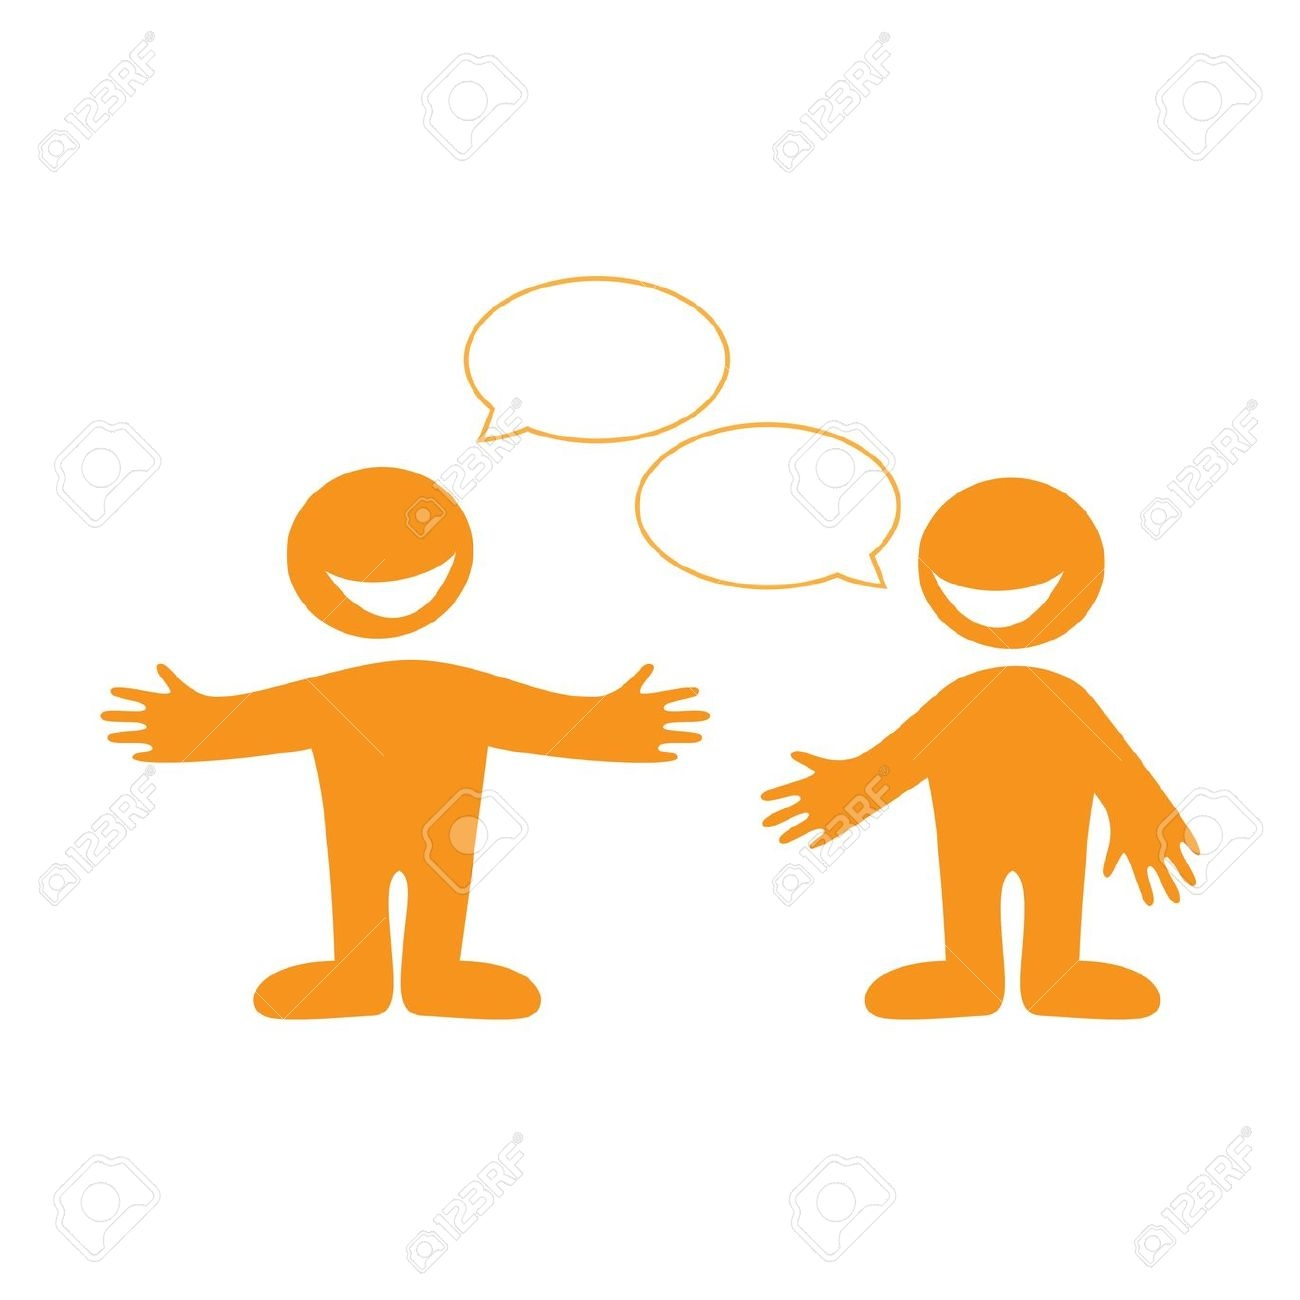 Two people arguing and a lawyer in between clipart.